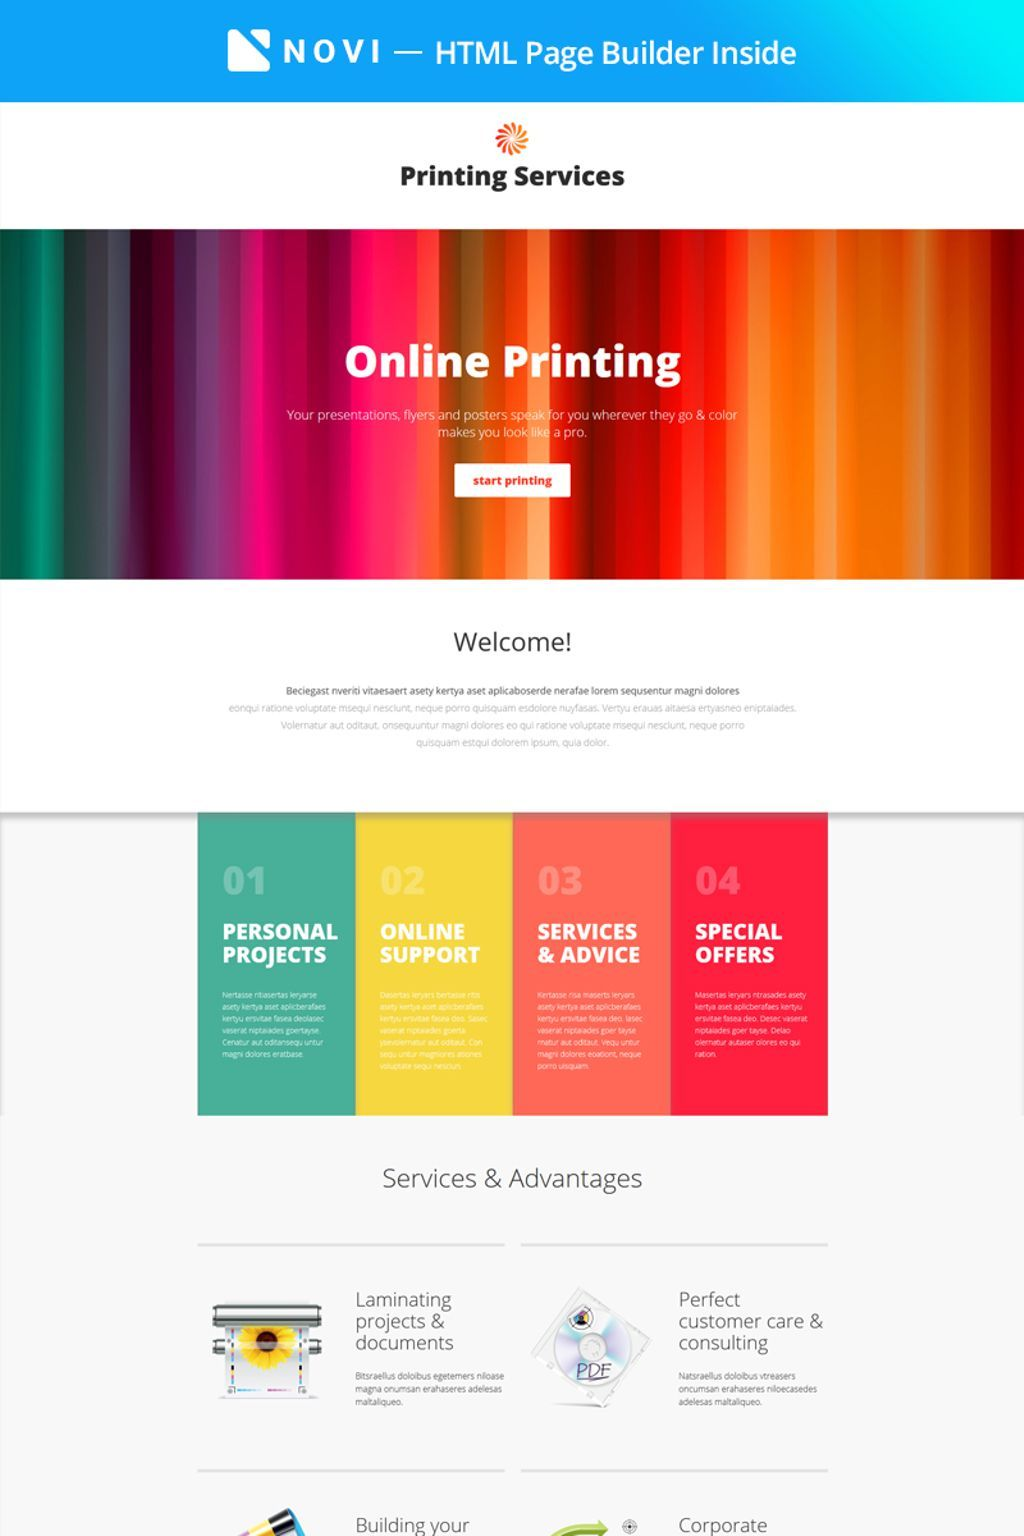 Printing Services - Online Printing with Novi Builder Landing Page